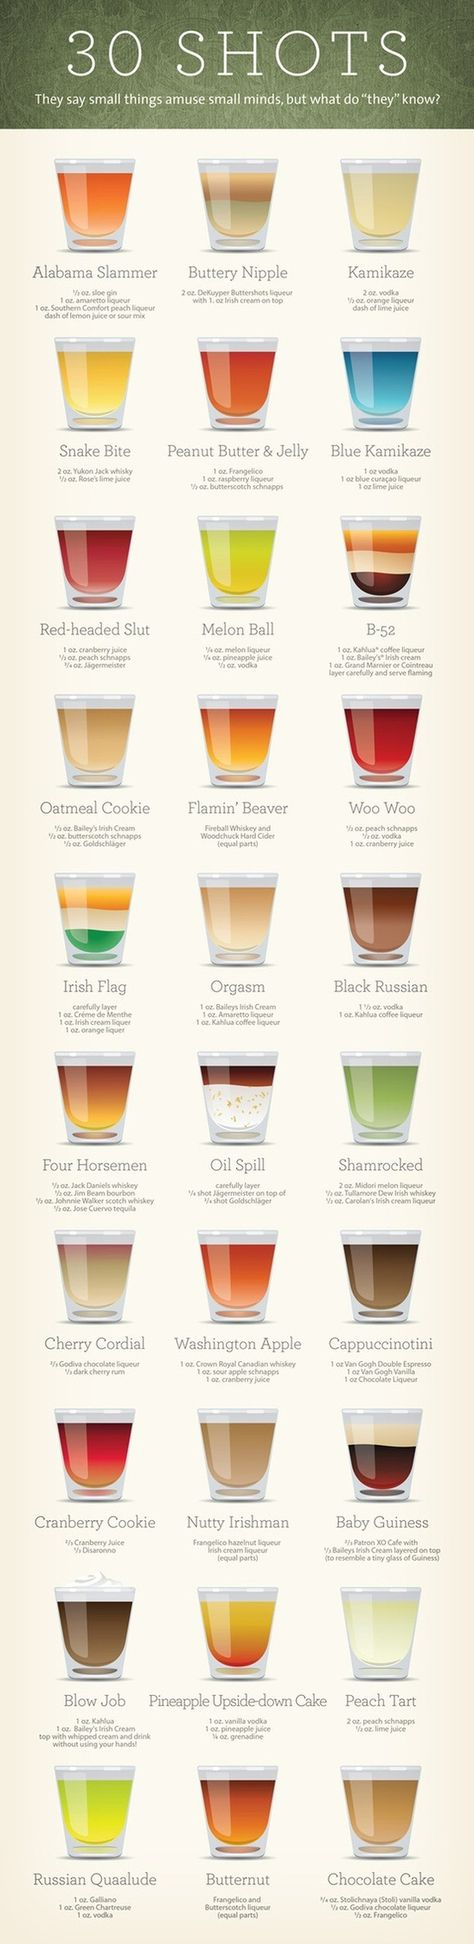 """Better start learning these! """"Alcohol Shots Recipes for College Parties"""""""